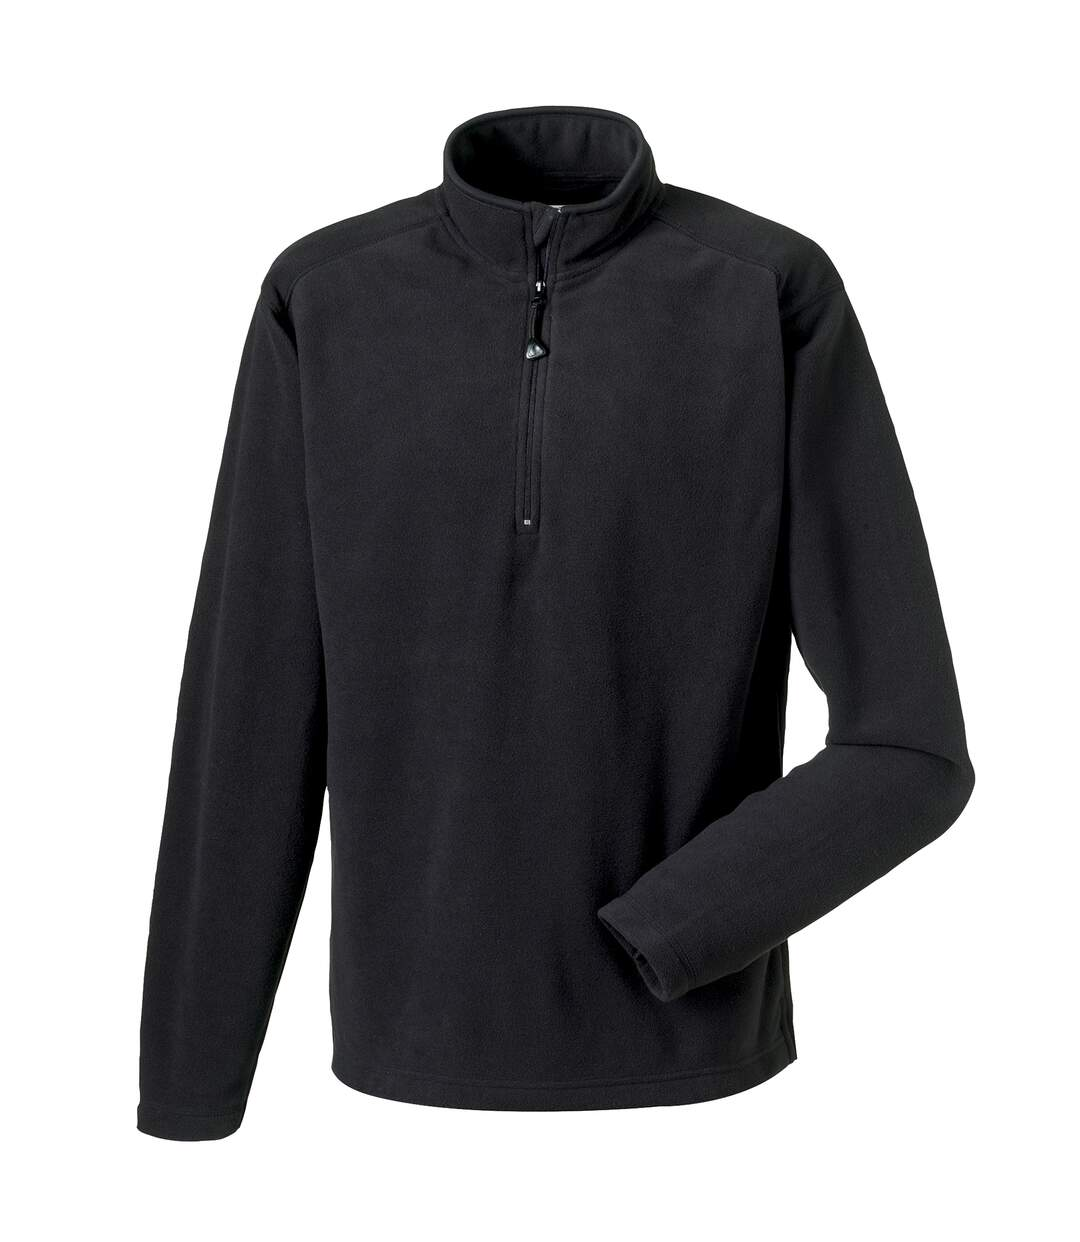 Russell Europe Mens 1/4 Zip Anti-Pill Microfleece Top (Black) - UTRW3283